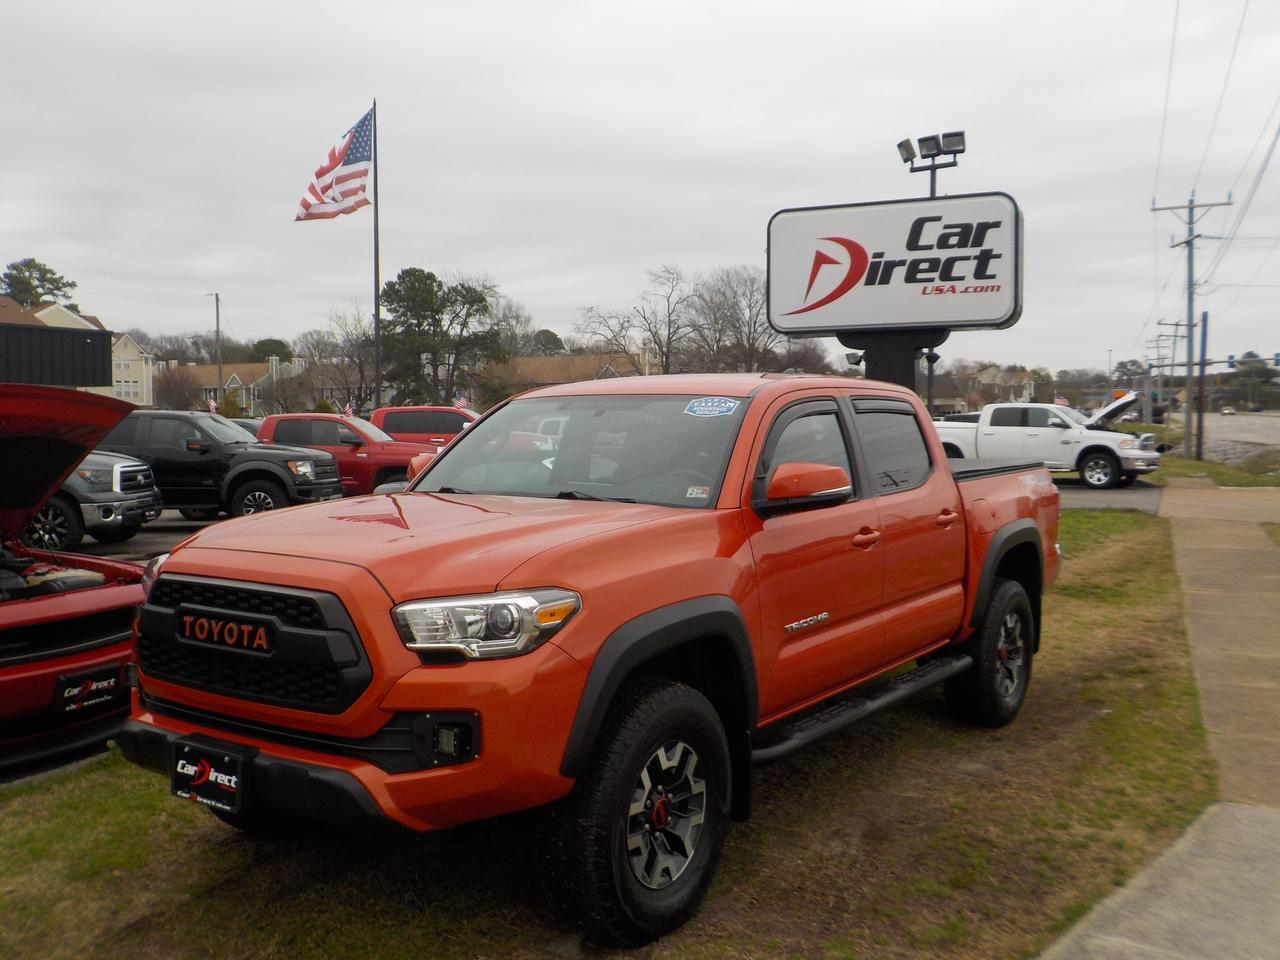 2017 TOYOTA TACOMA SR5 TRD OFF ROAD DOUBLE CAB 4X4, WARRANTY, SOFT TONNEAU COVER, TOW, RUNNING BOARDS, BACKUP CAMERA! Virginia Beach VA